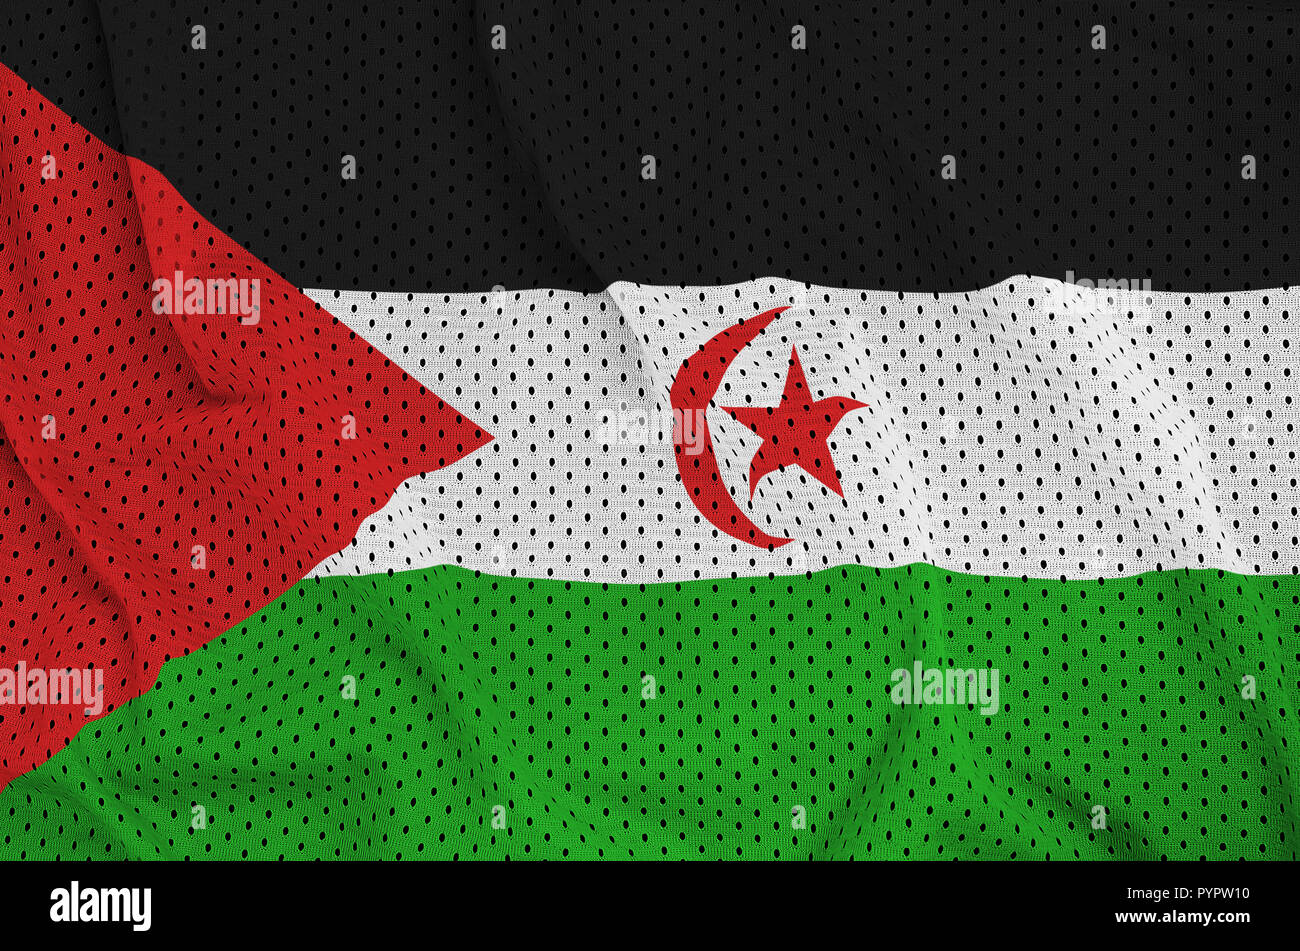 Western Sahara flag printed on a polyester nylon sportswear mesh fabric with some folds - Stock Image